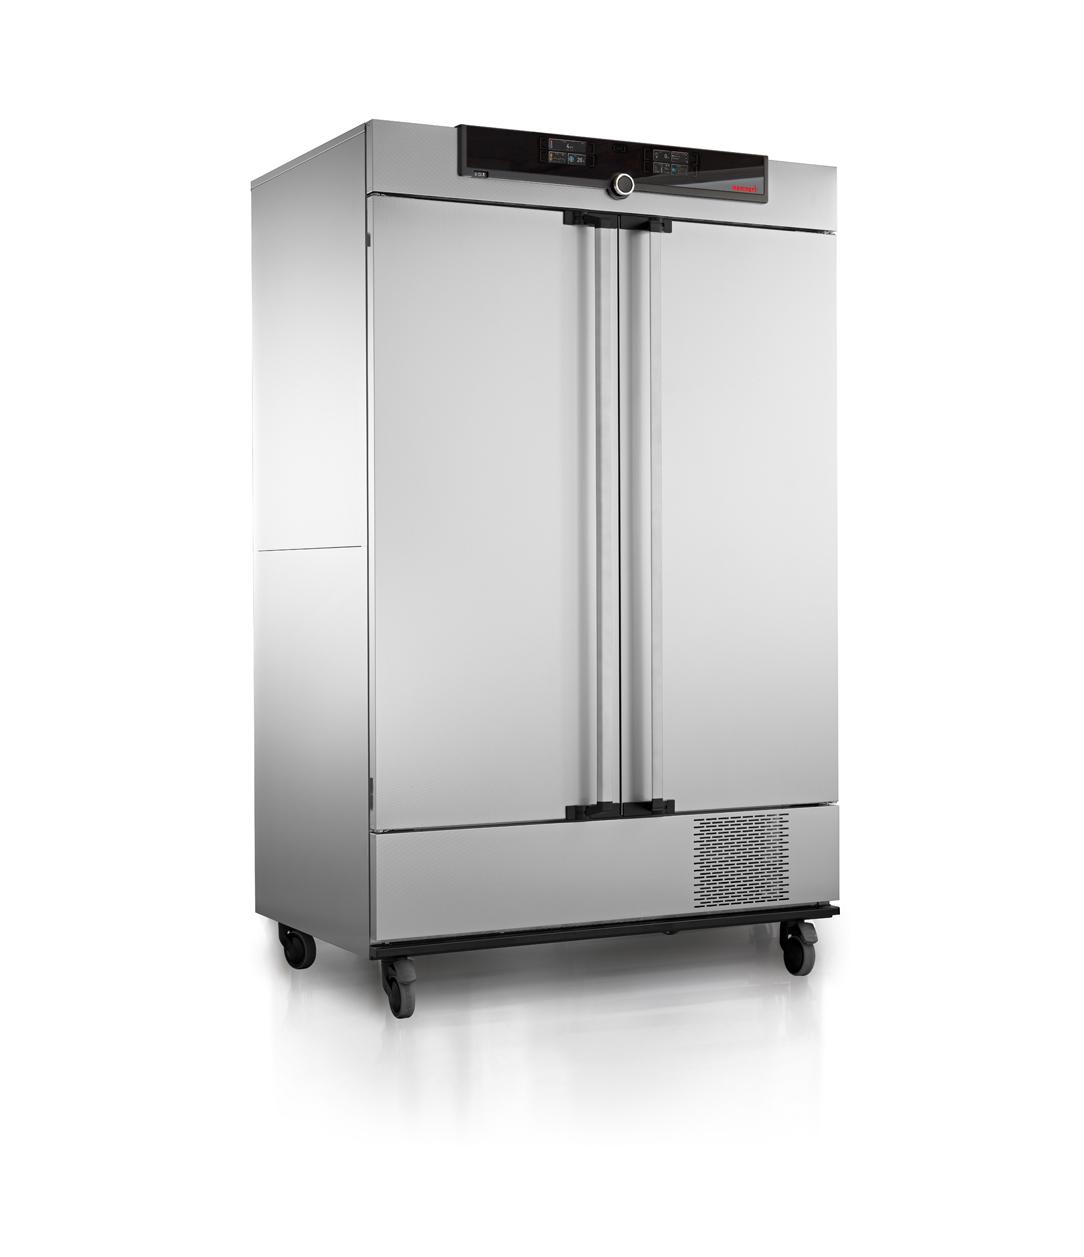 Memmert sought a latching solution that would allow the user to access the interior of the oven without having to use their hands to open the door